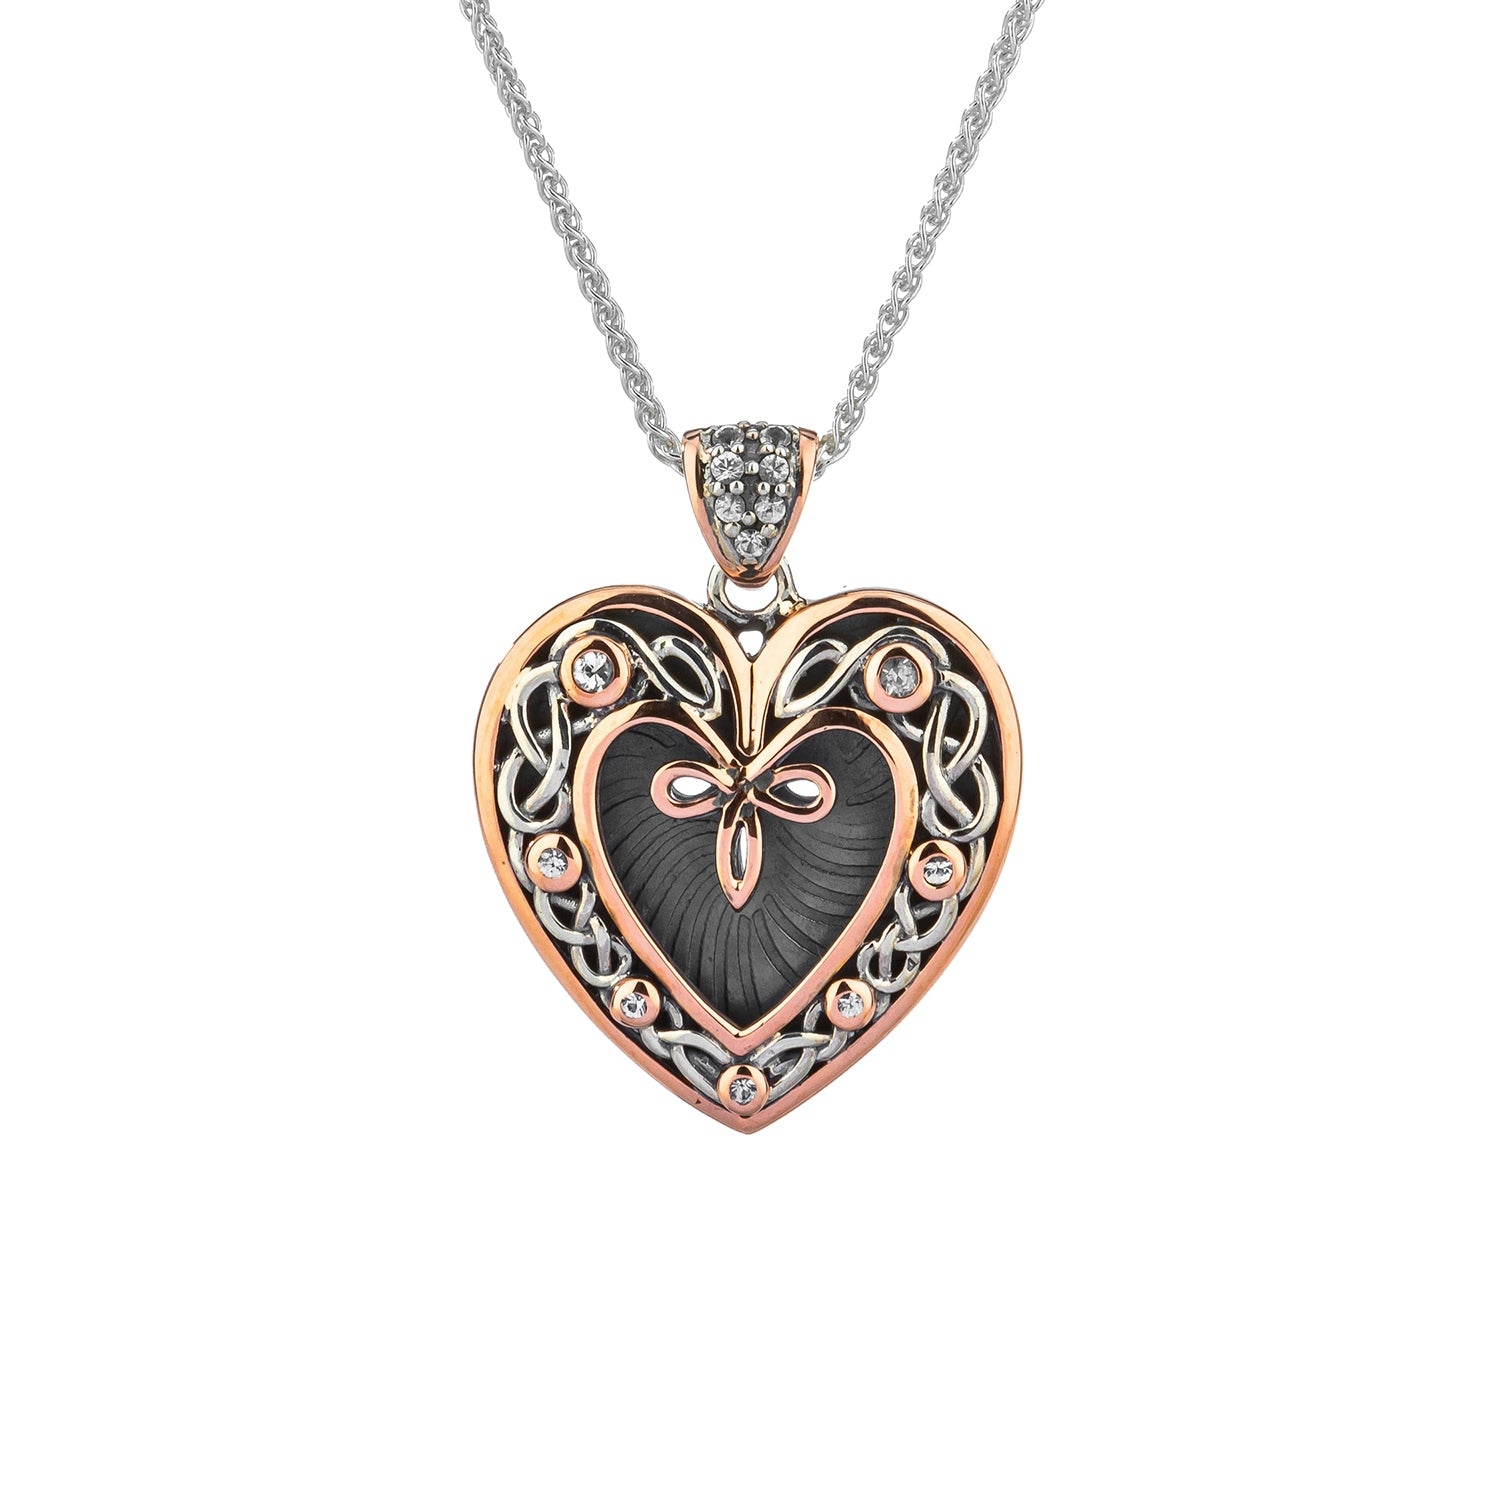 Pendant Oxidized 10k Rose White Sapphire Celtic Heart Pendant from welch and company jewelers near syracuse ny